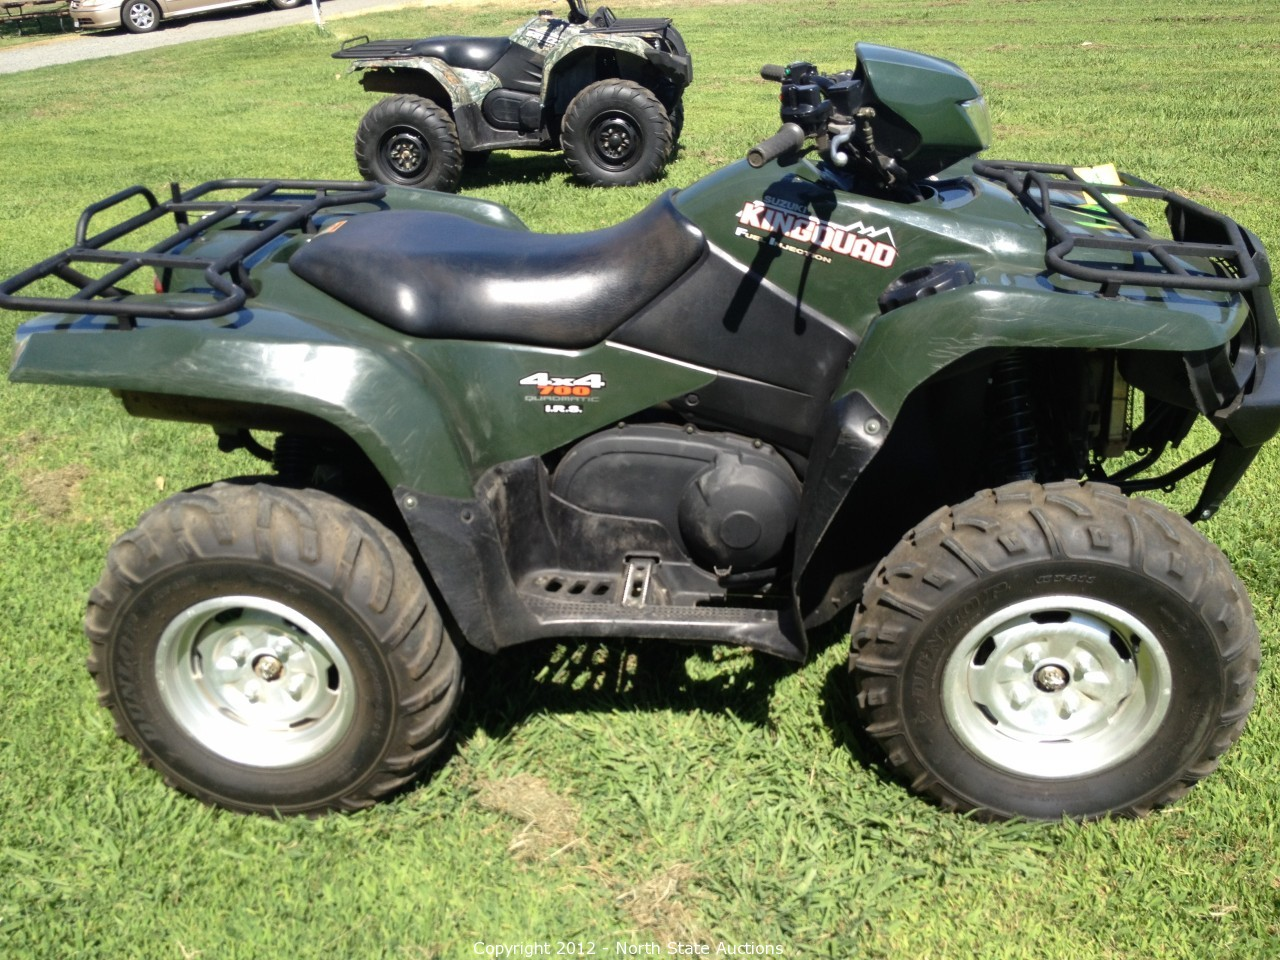 North State Auctions Auction Consignment Auction of ATVs UTVs – King Quad 700 Wiring Diagram